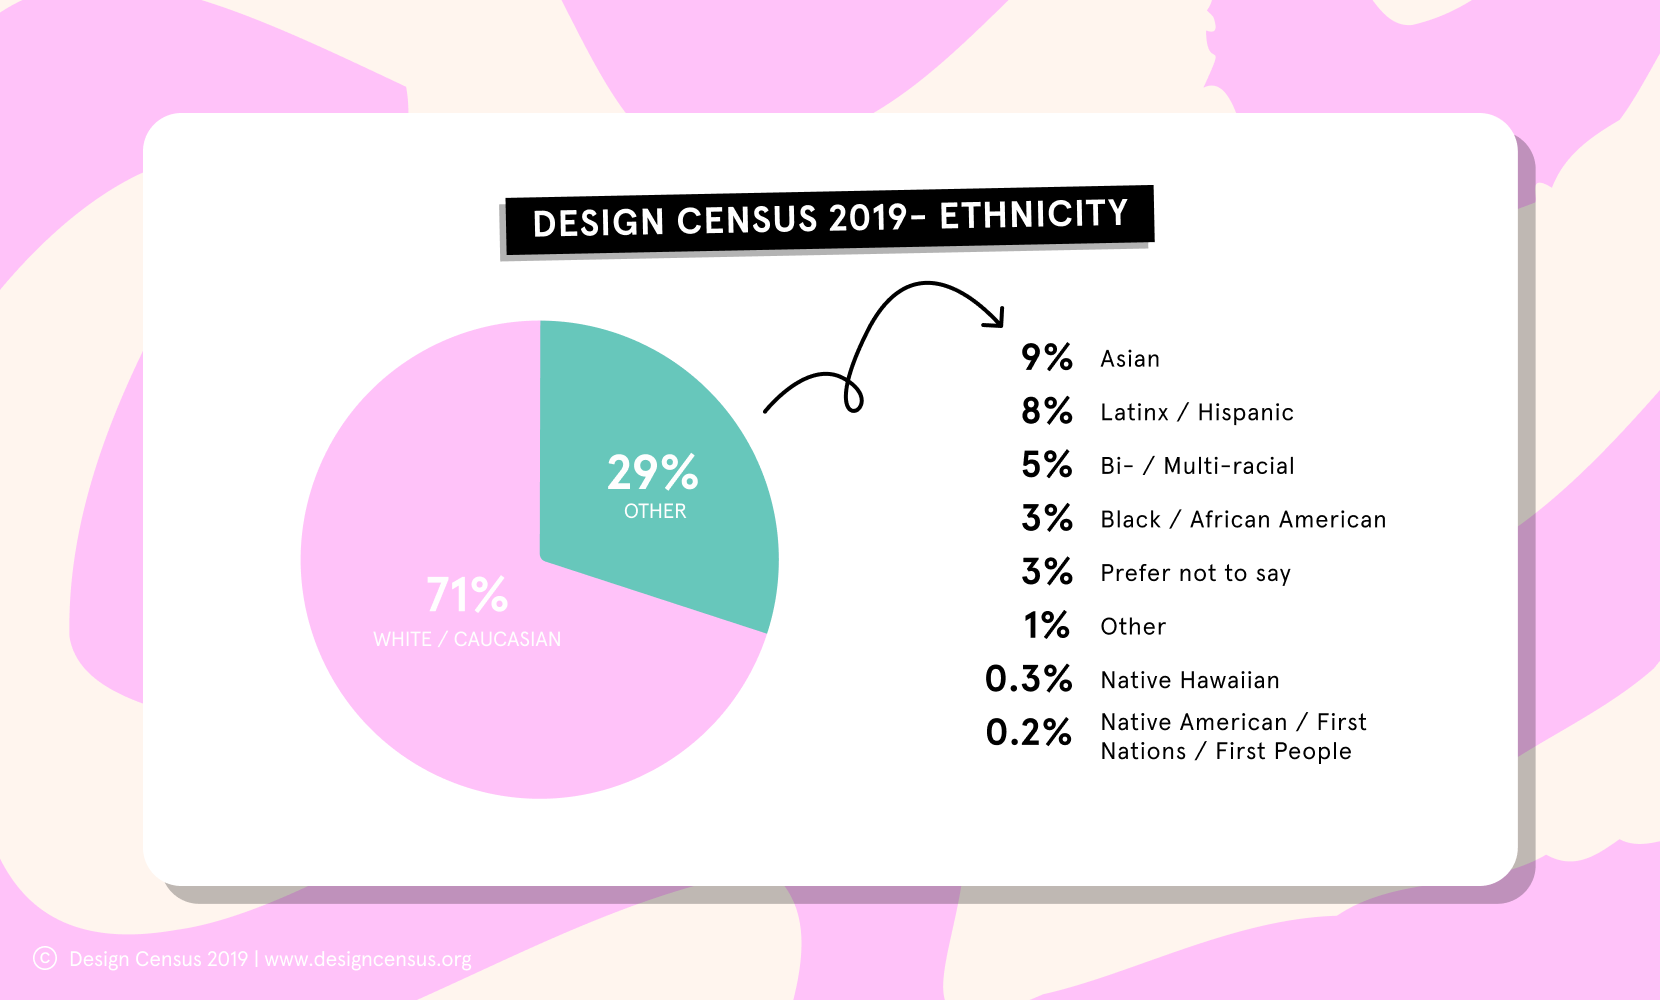 Data of diversity in design in 2019. 71% White, 29% other.